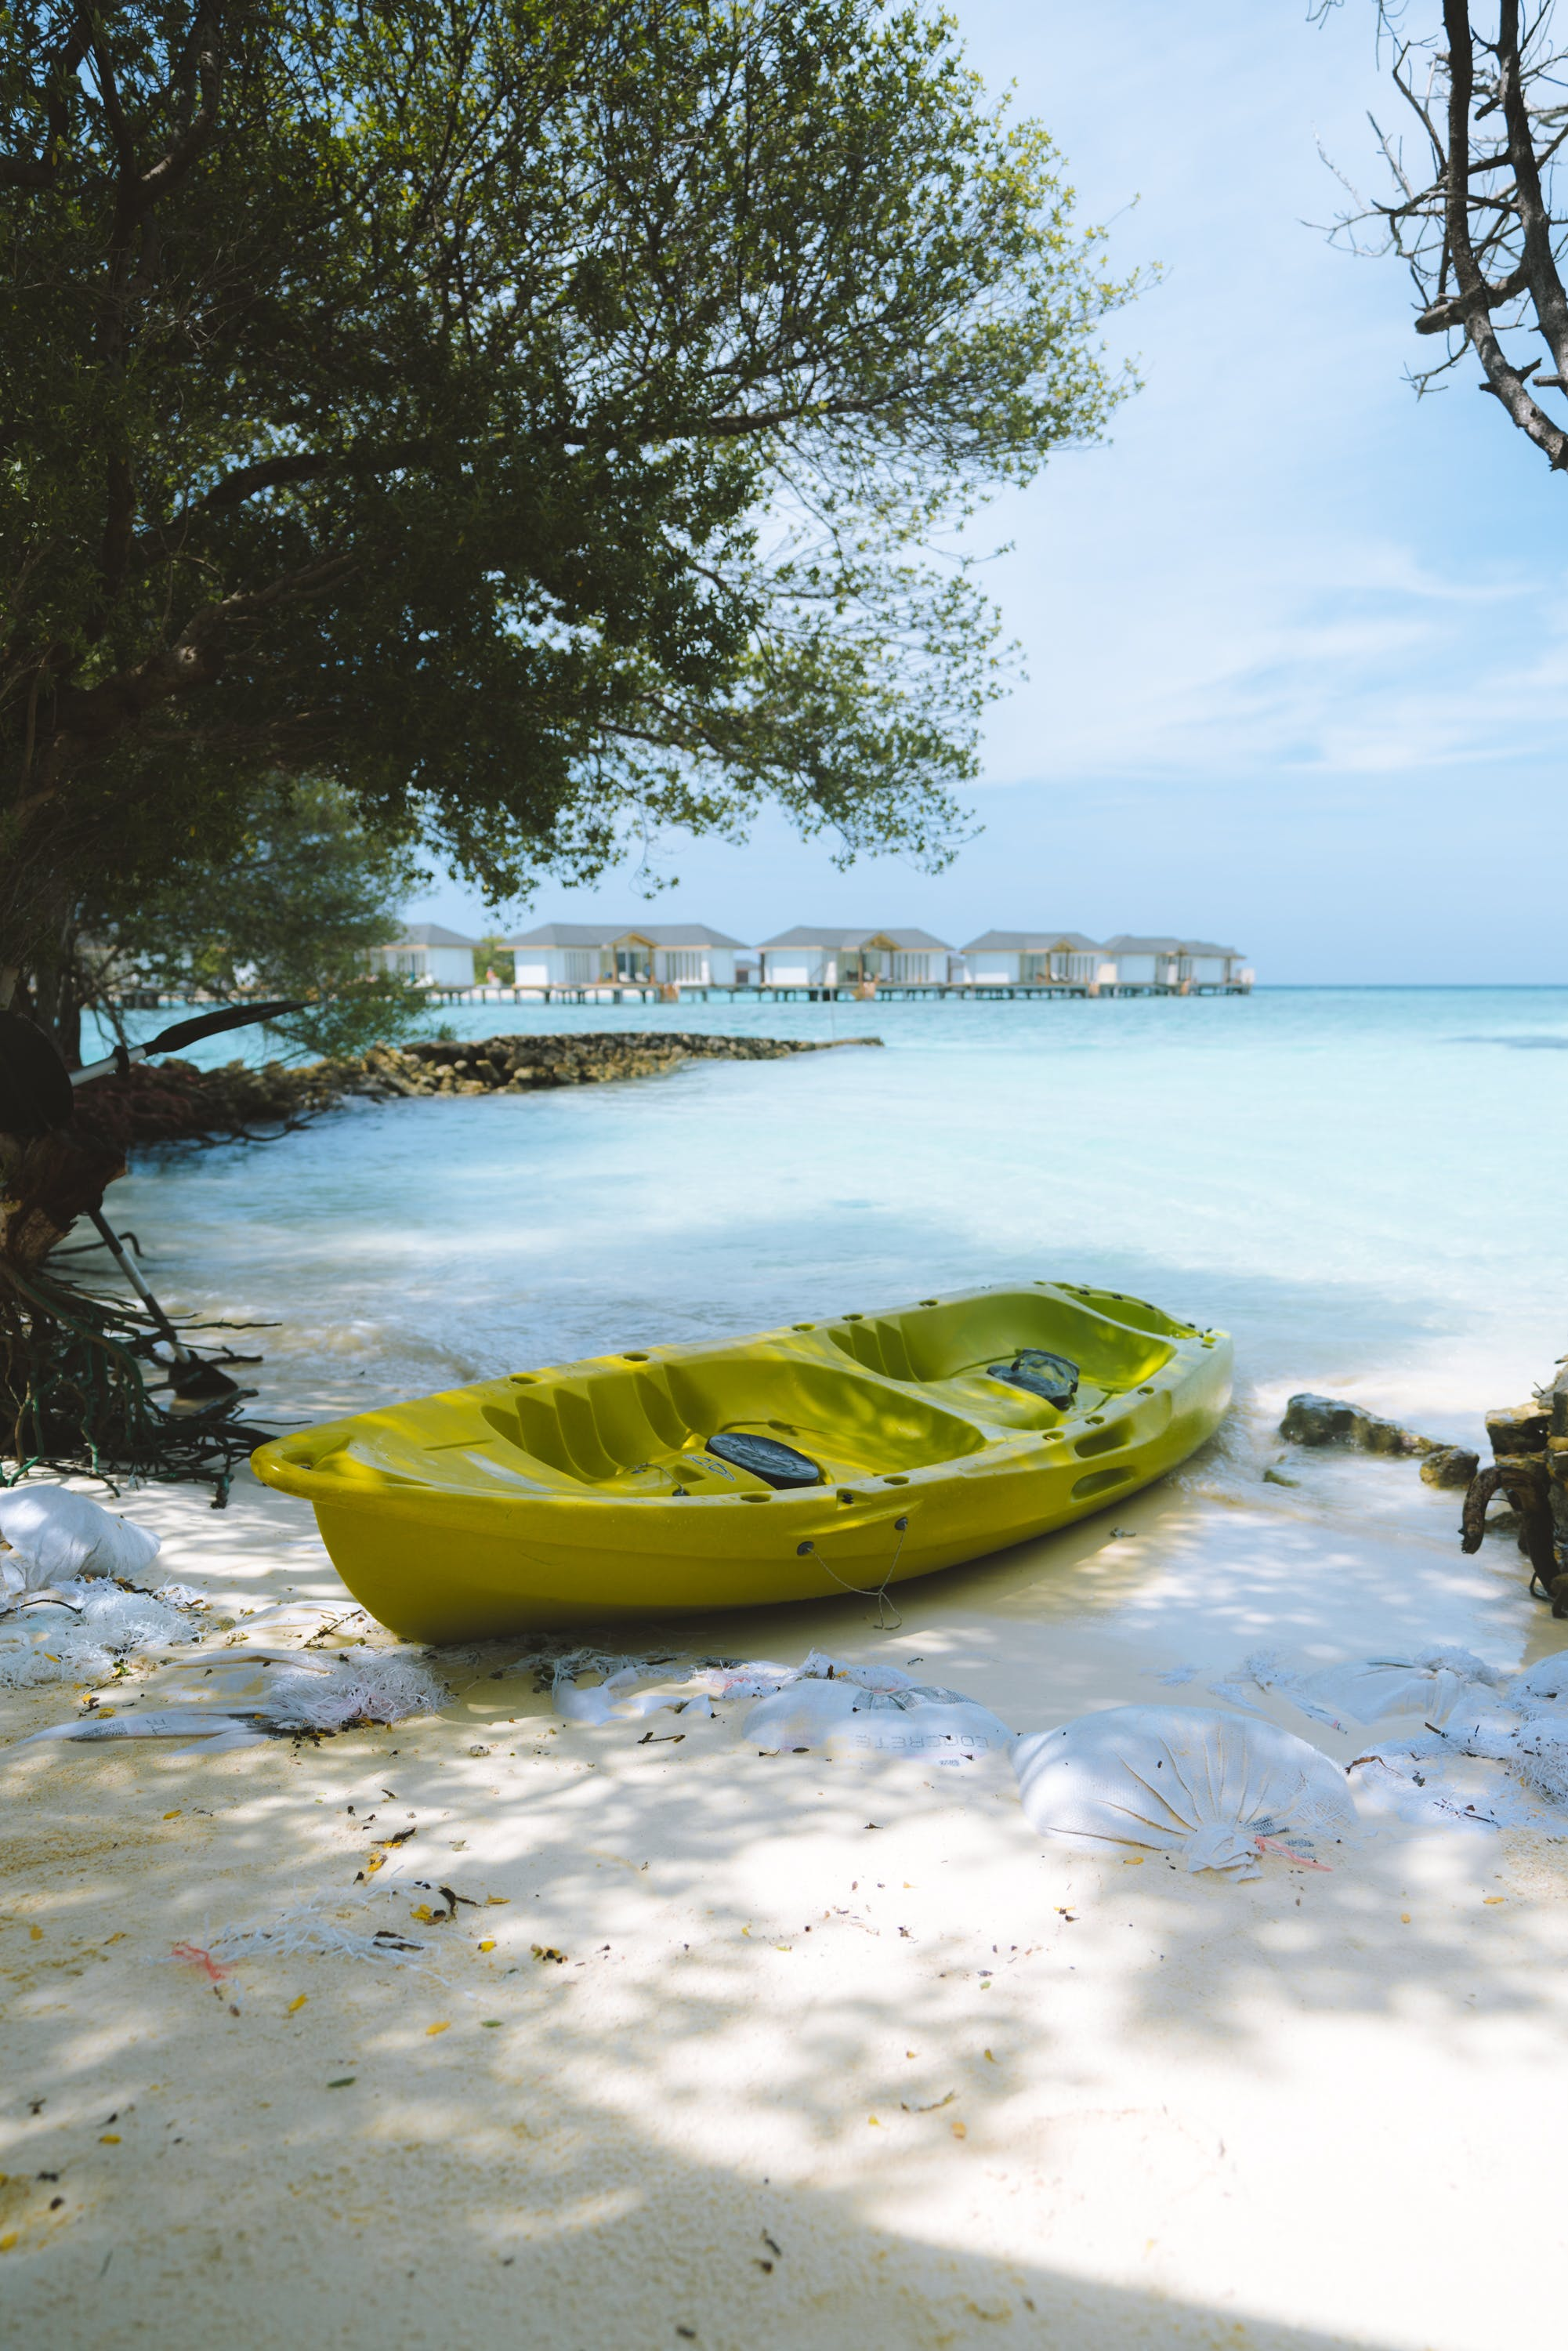 Green Kayak on Seashore